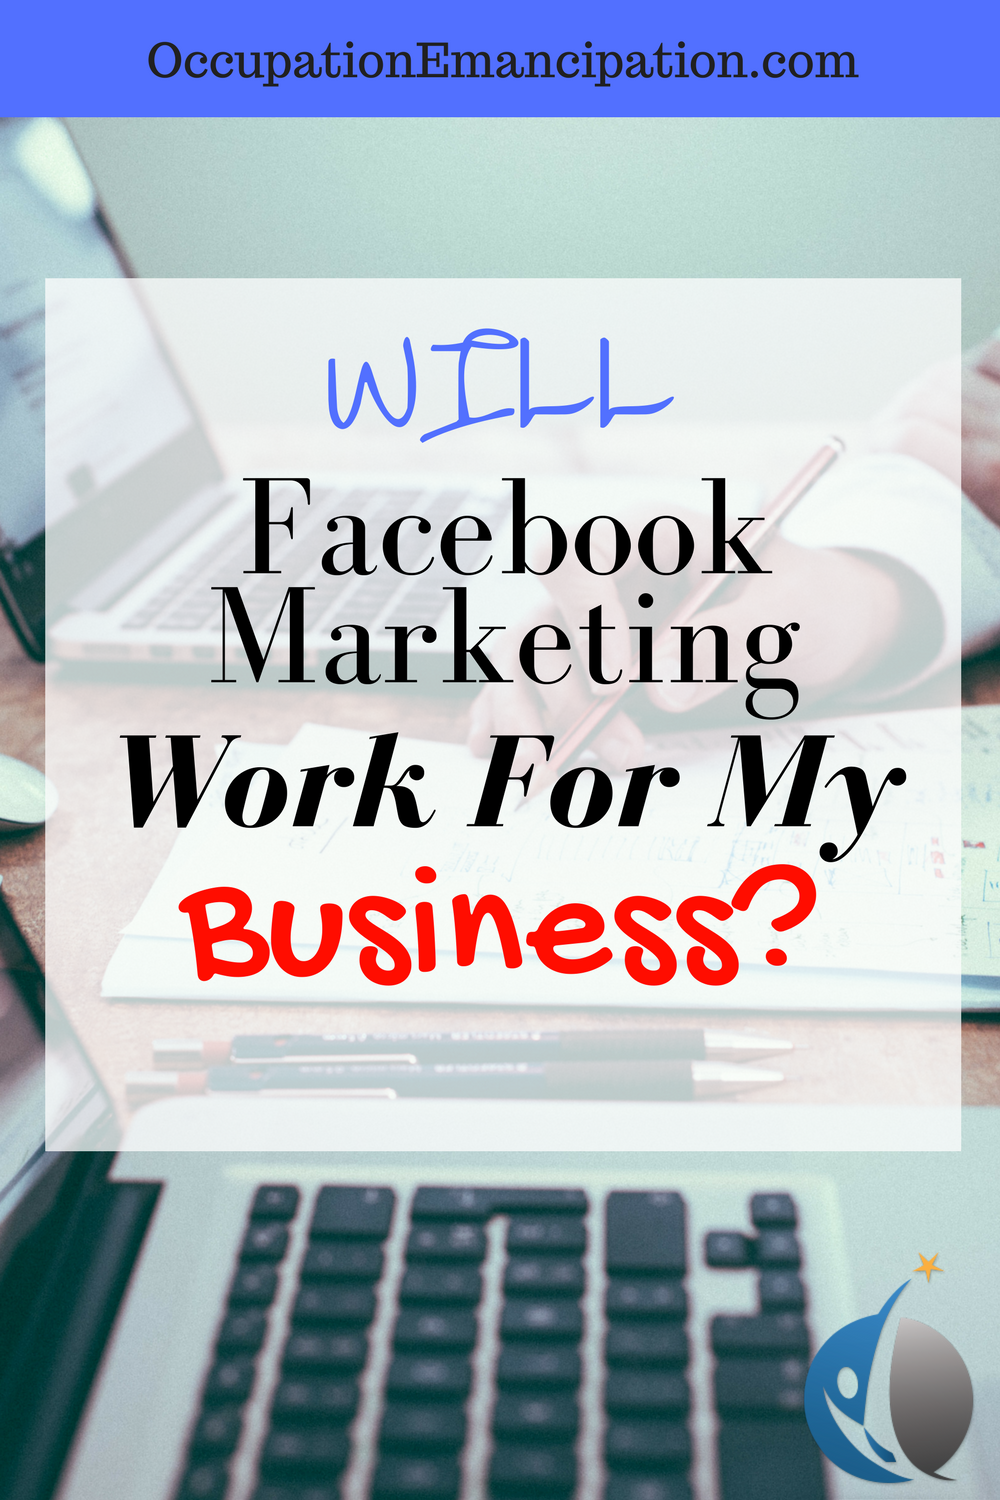 FacebookMarketing(1)